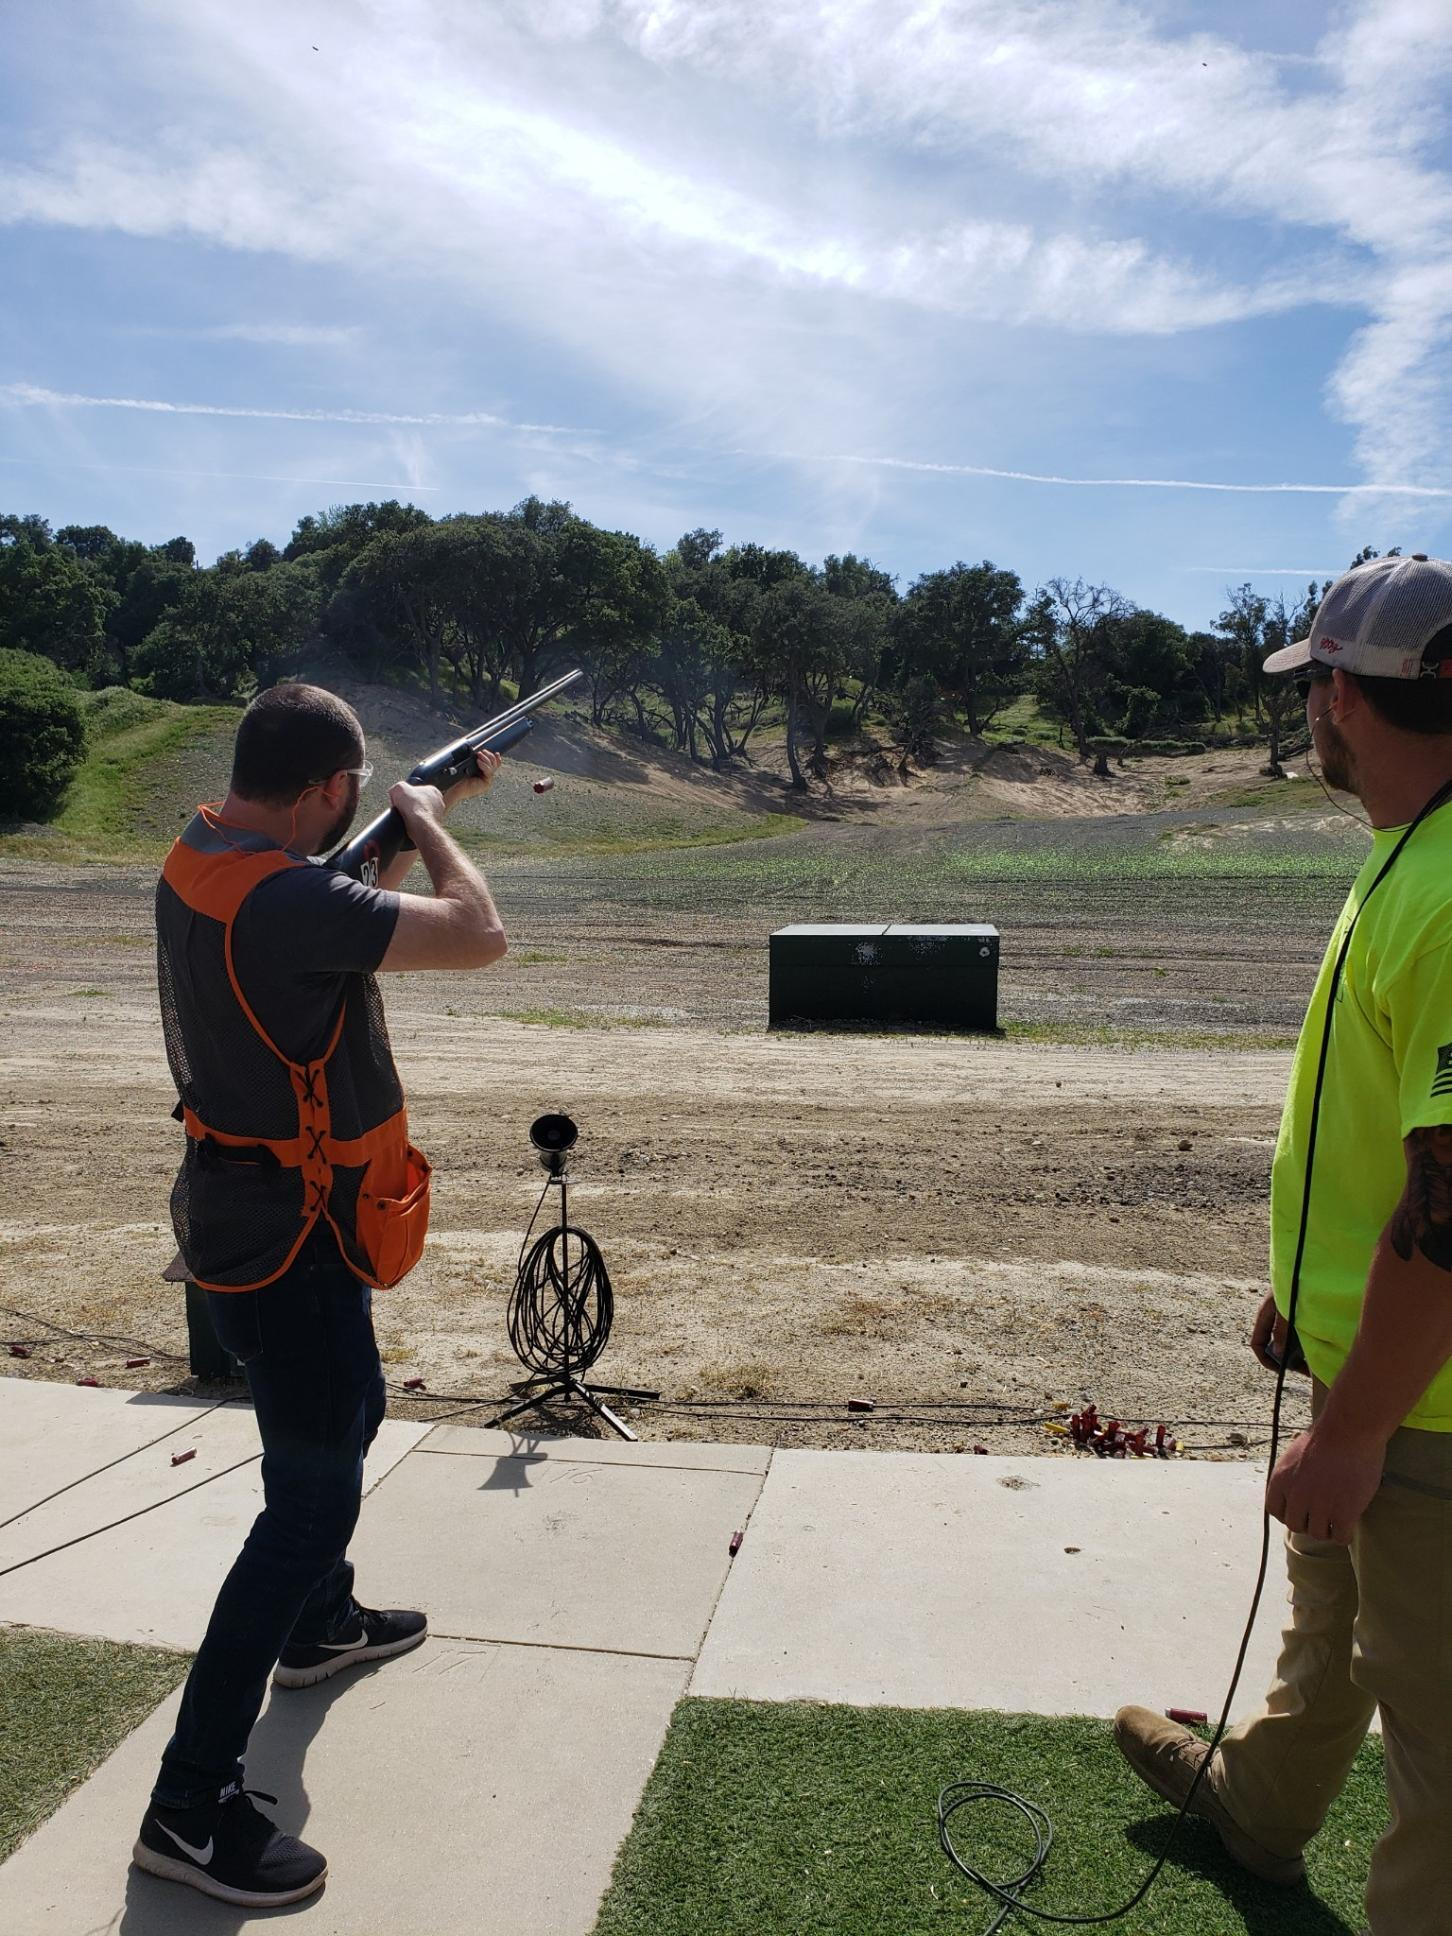 Bryan at the range, showing us how its done.